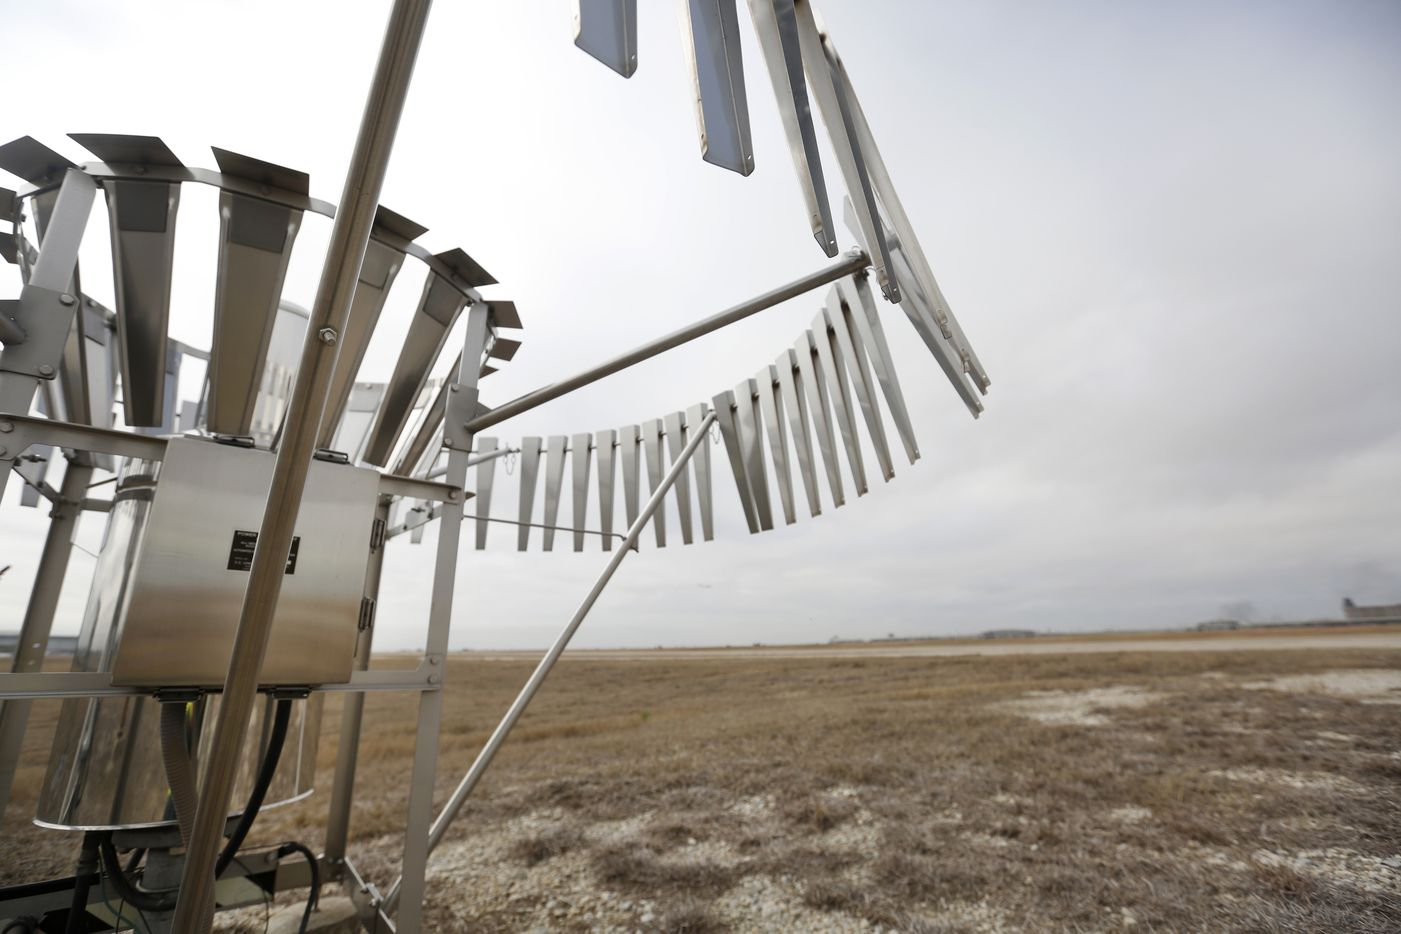 The National Weather Service's rain gauge at the climate site at Dallas/Fort Worth International Airport in Irving, Texas on Tuesday, Feb. 26, 2019. (Rose Baca/Staff Photographer)